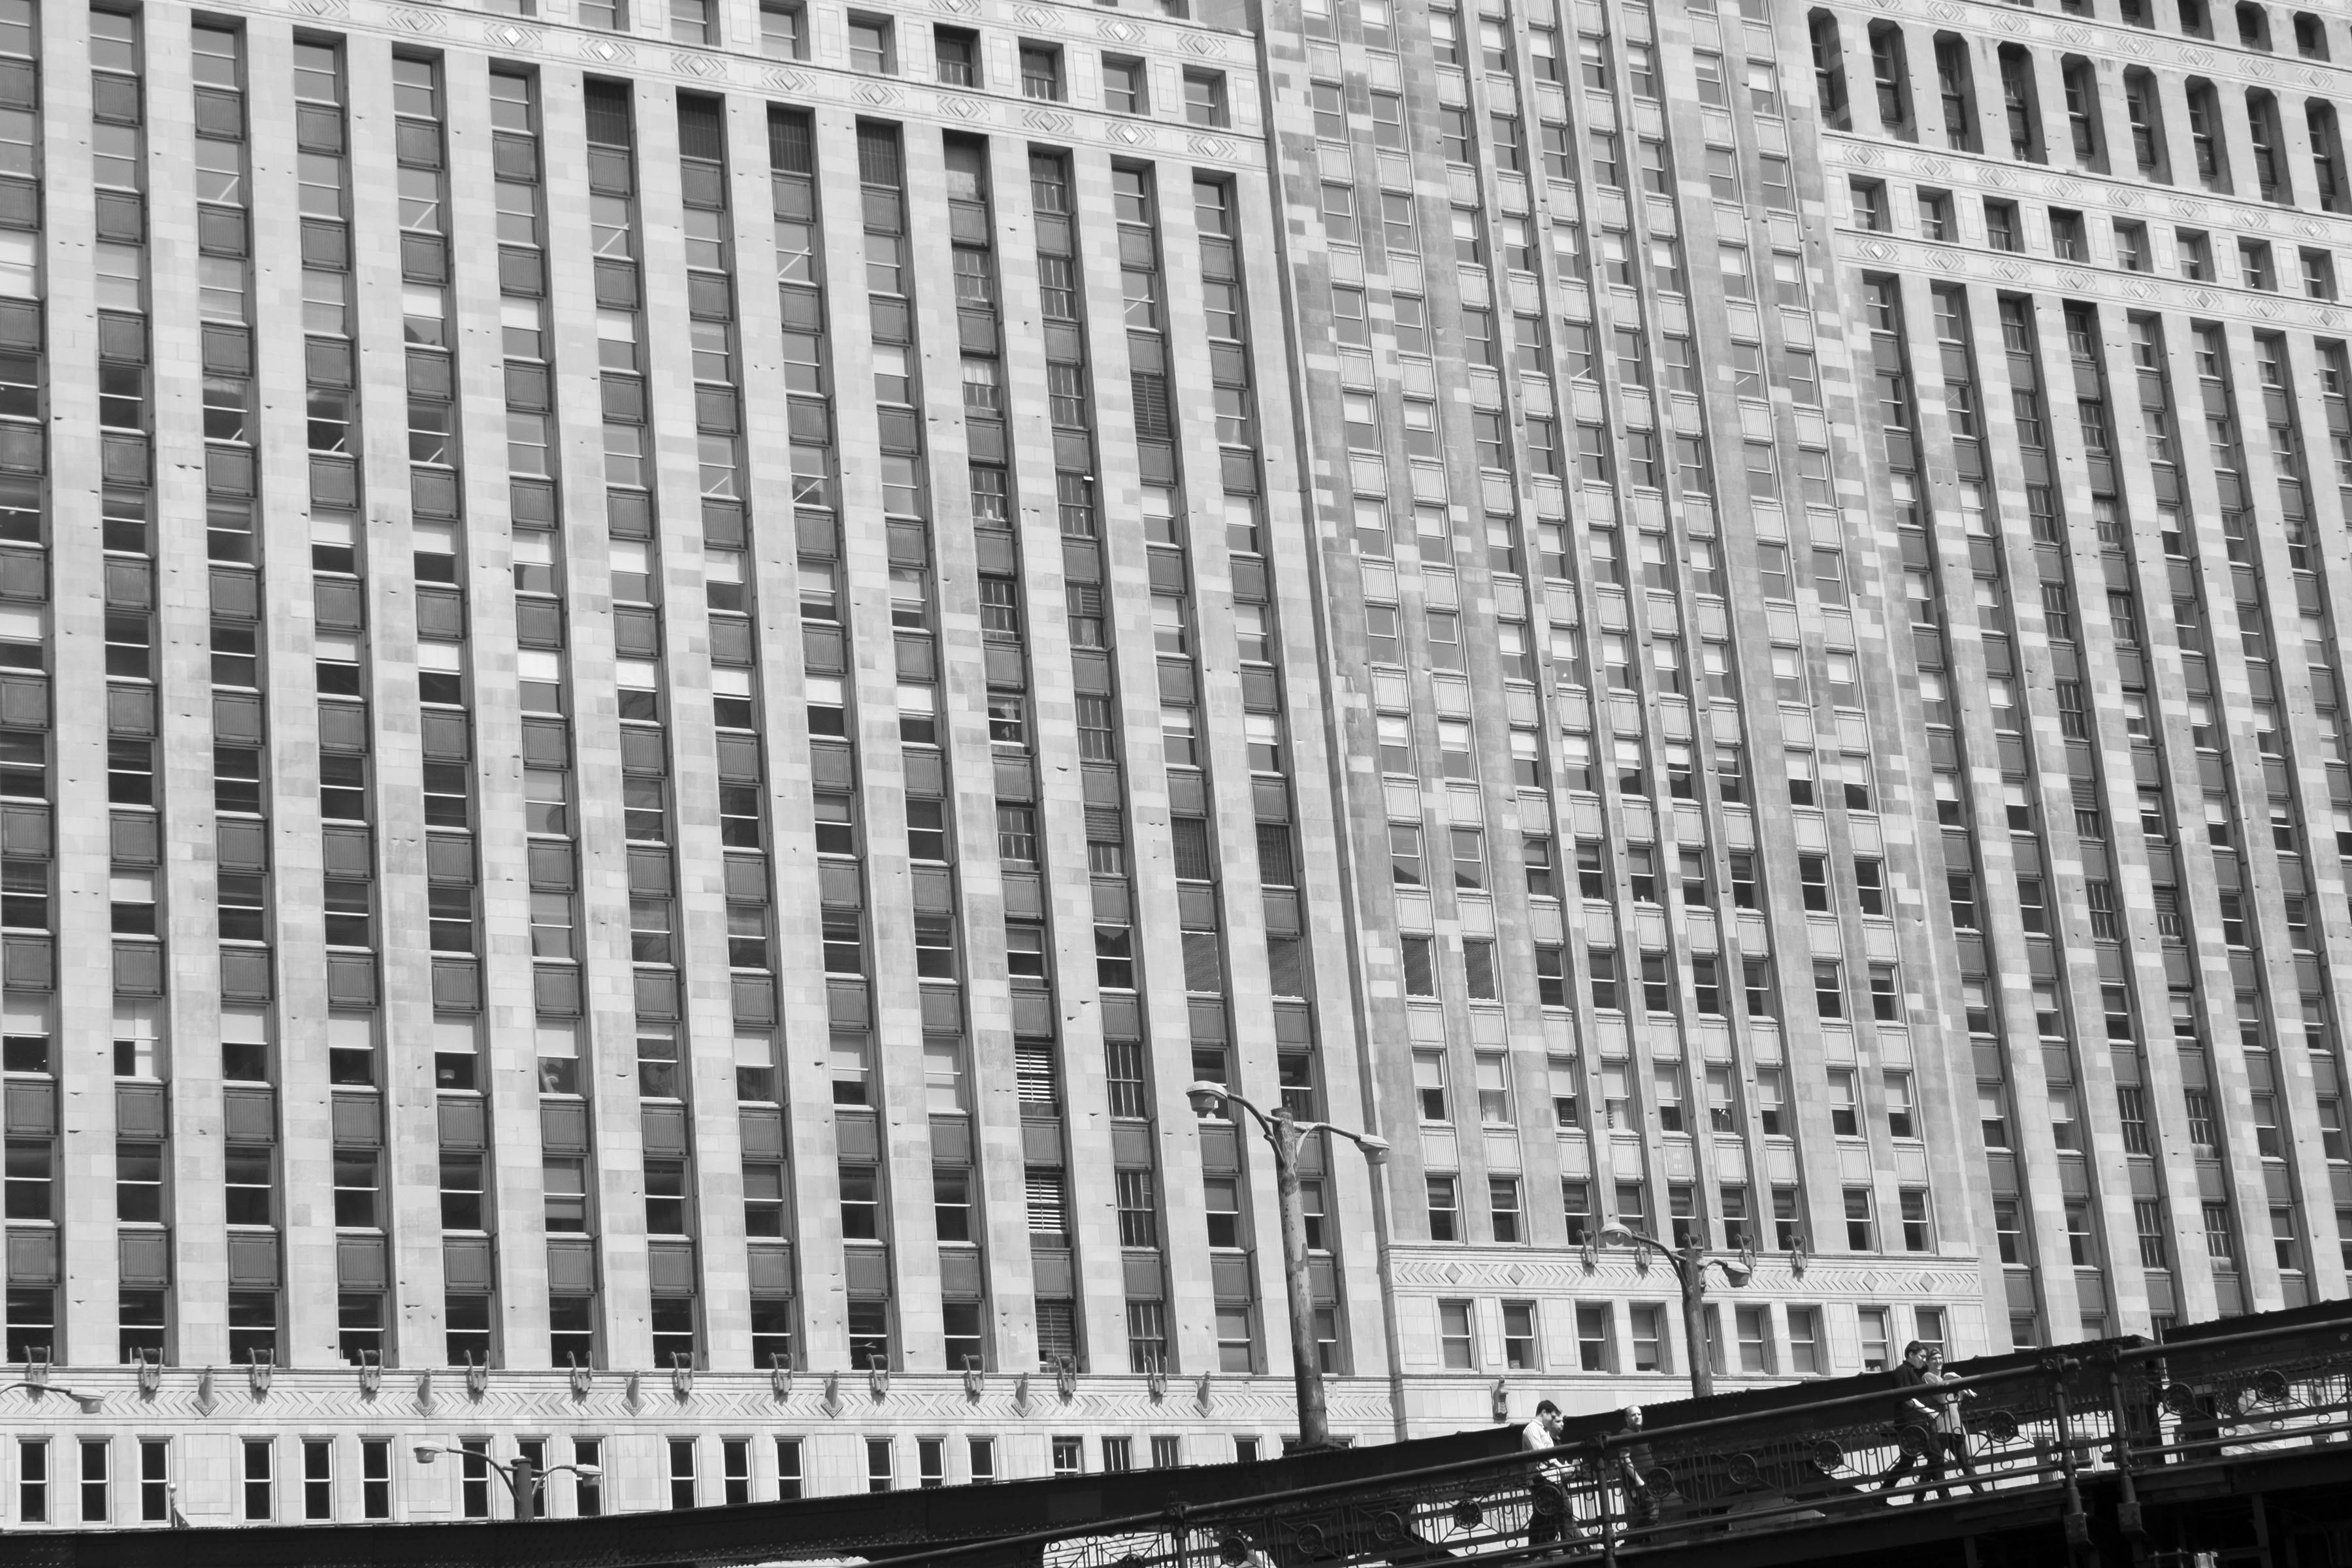 A photograph of a massive building facade with a grid of windows. The right bottom corner of the photograph features a sliver of dark bridge, with 3 small human figures walking on it.